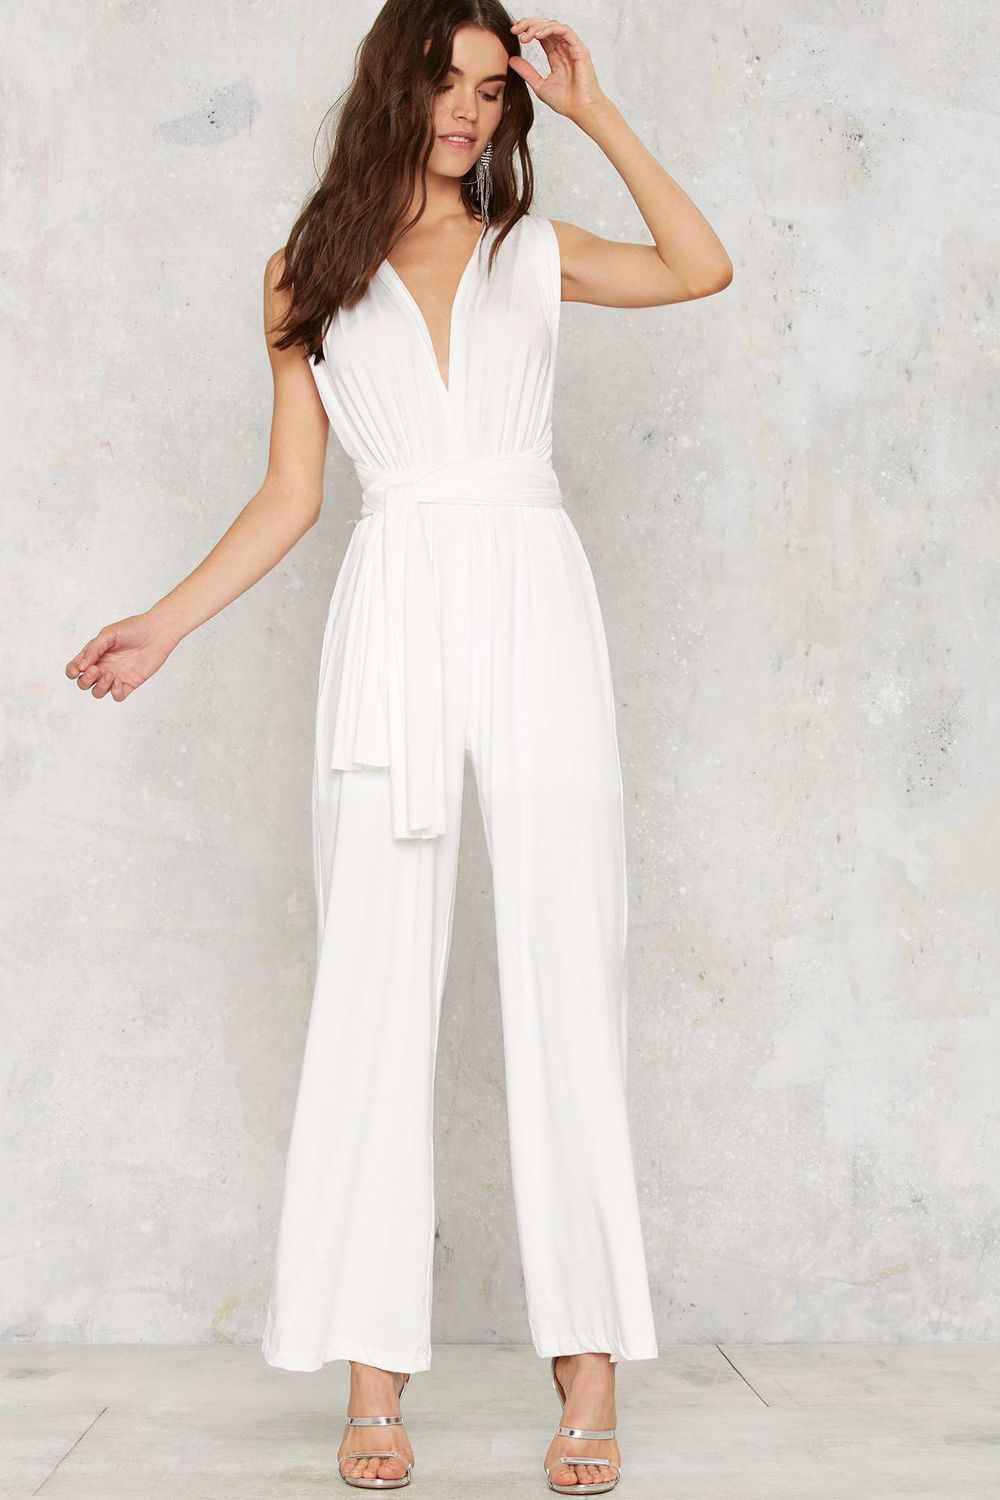 3e9059da7ee9 9 Chic Wedding Jumpsuits That Will Make You Rethink Your Wedding ...